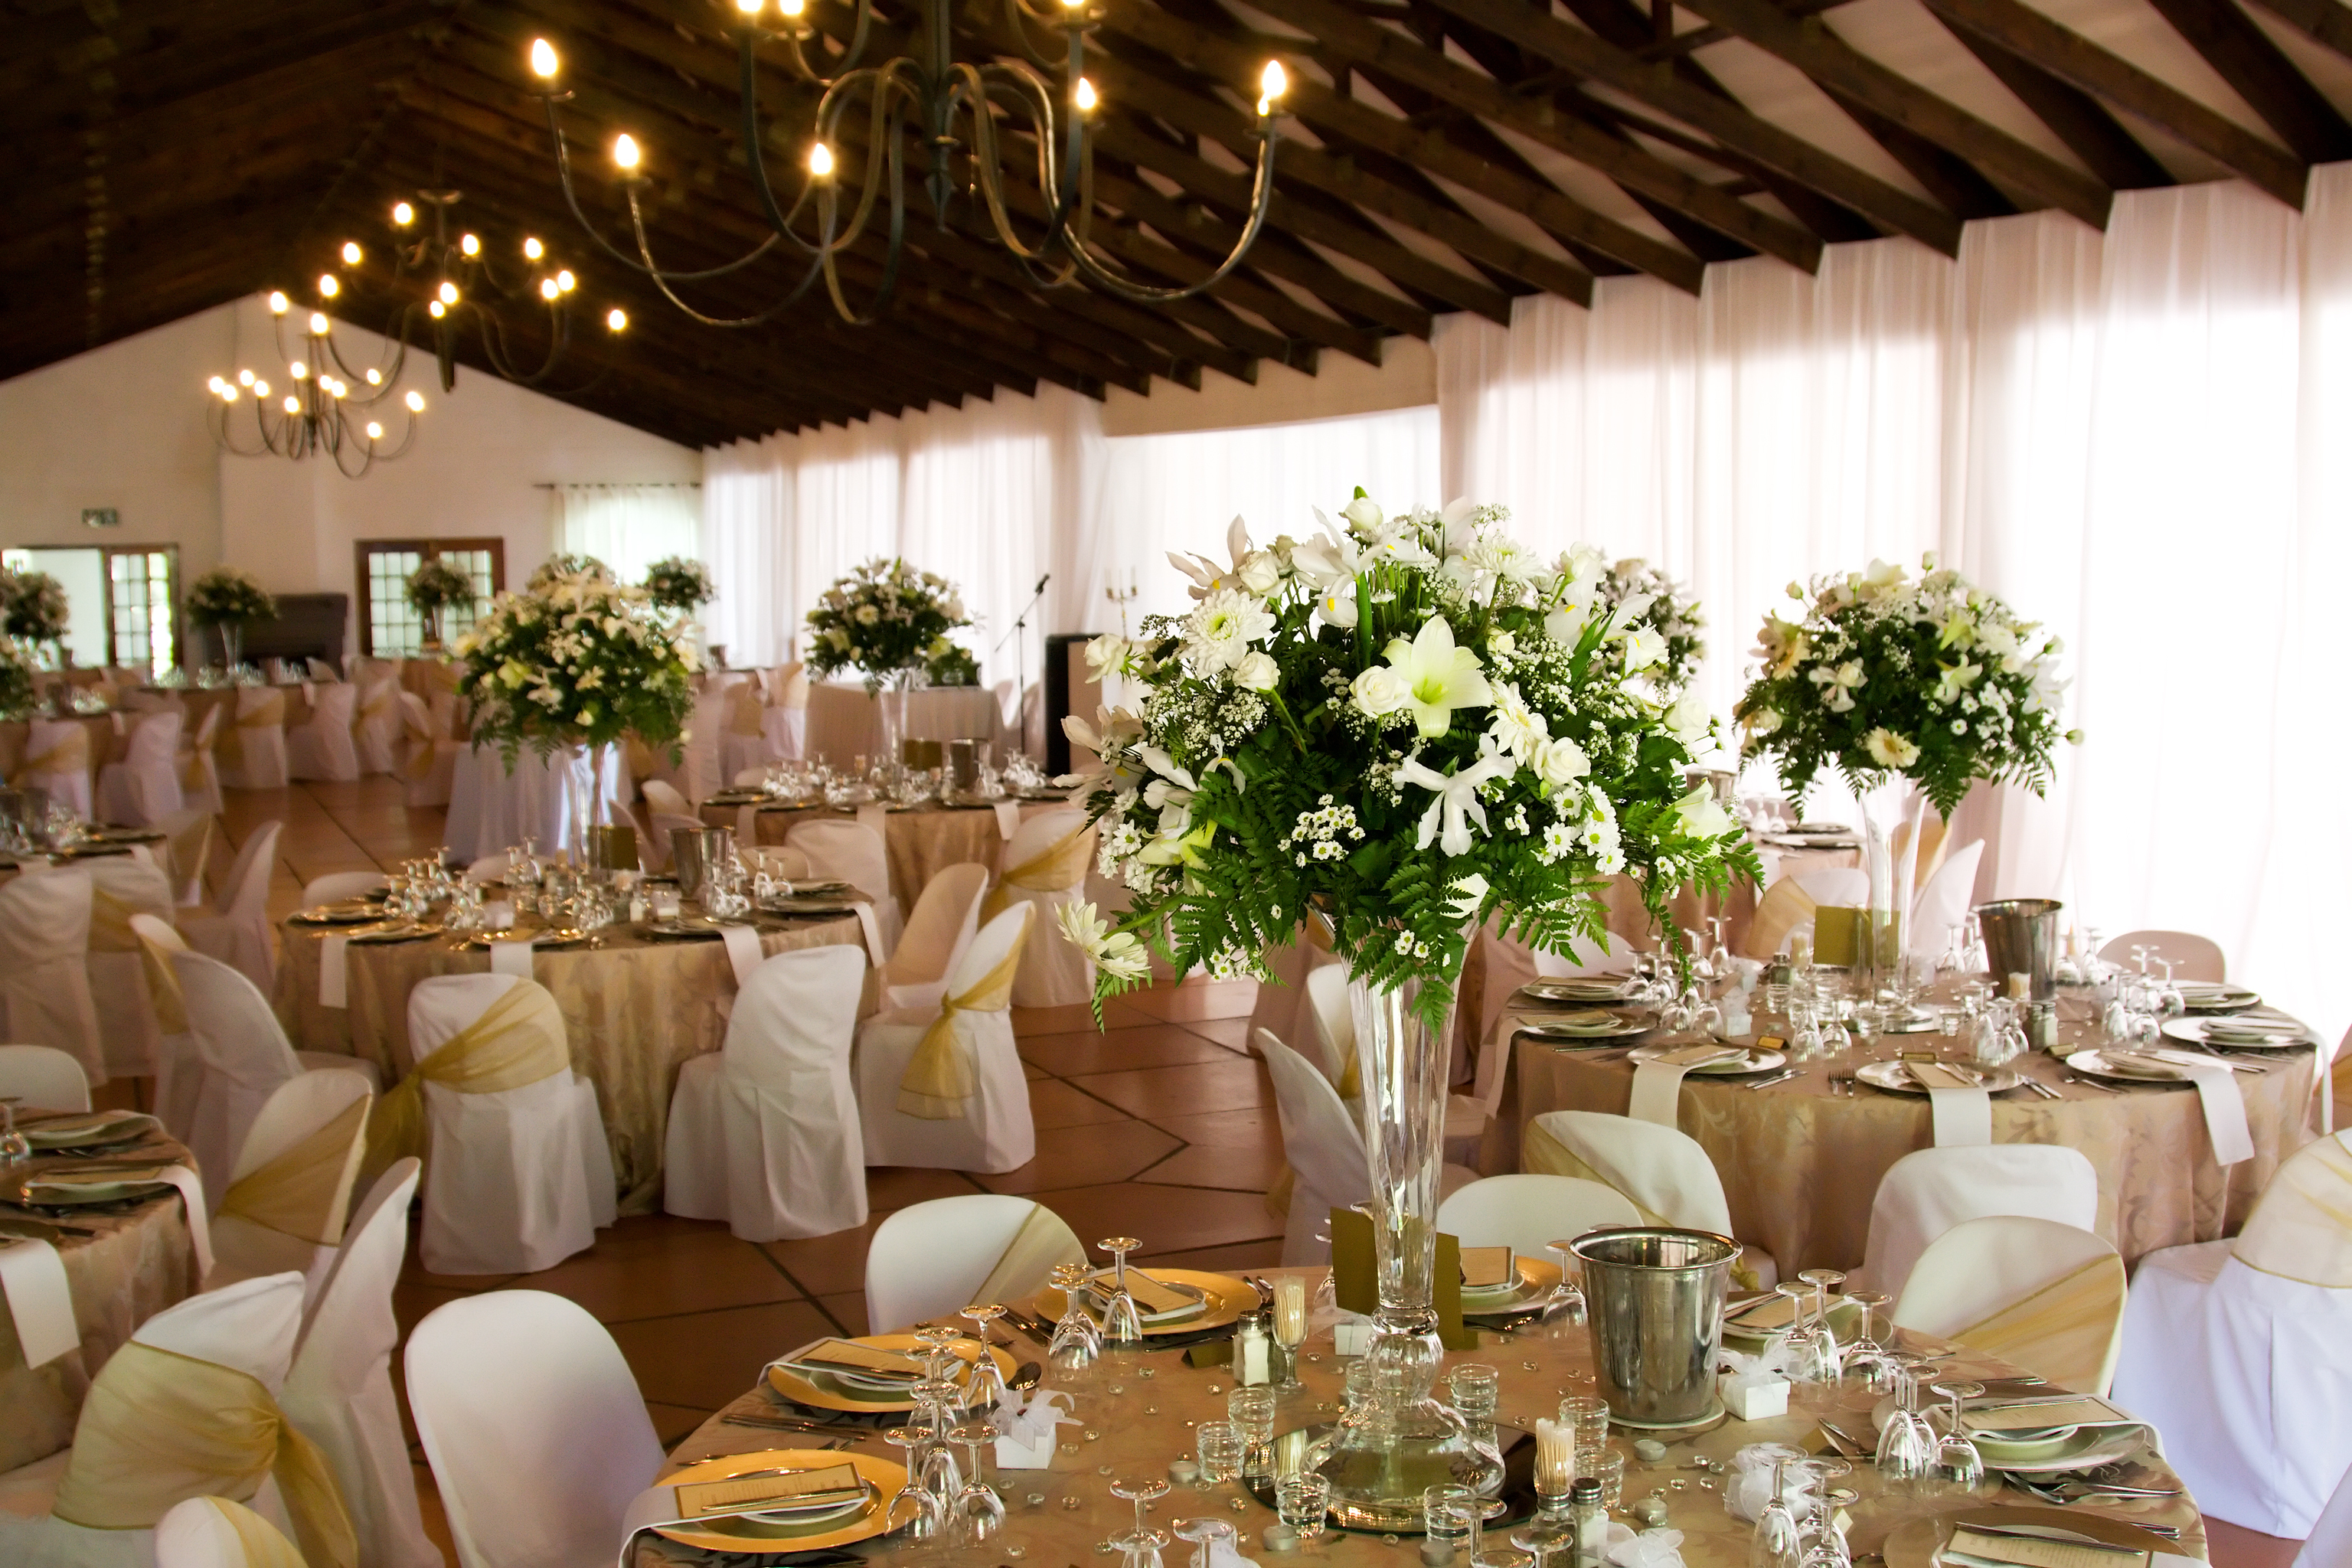 Wedding Halls In Nj | 11 Dos And Don Ts When Looking For The Best Bergen County Wedding